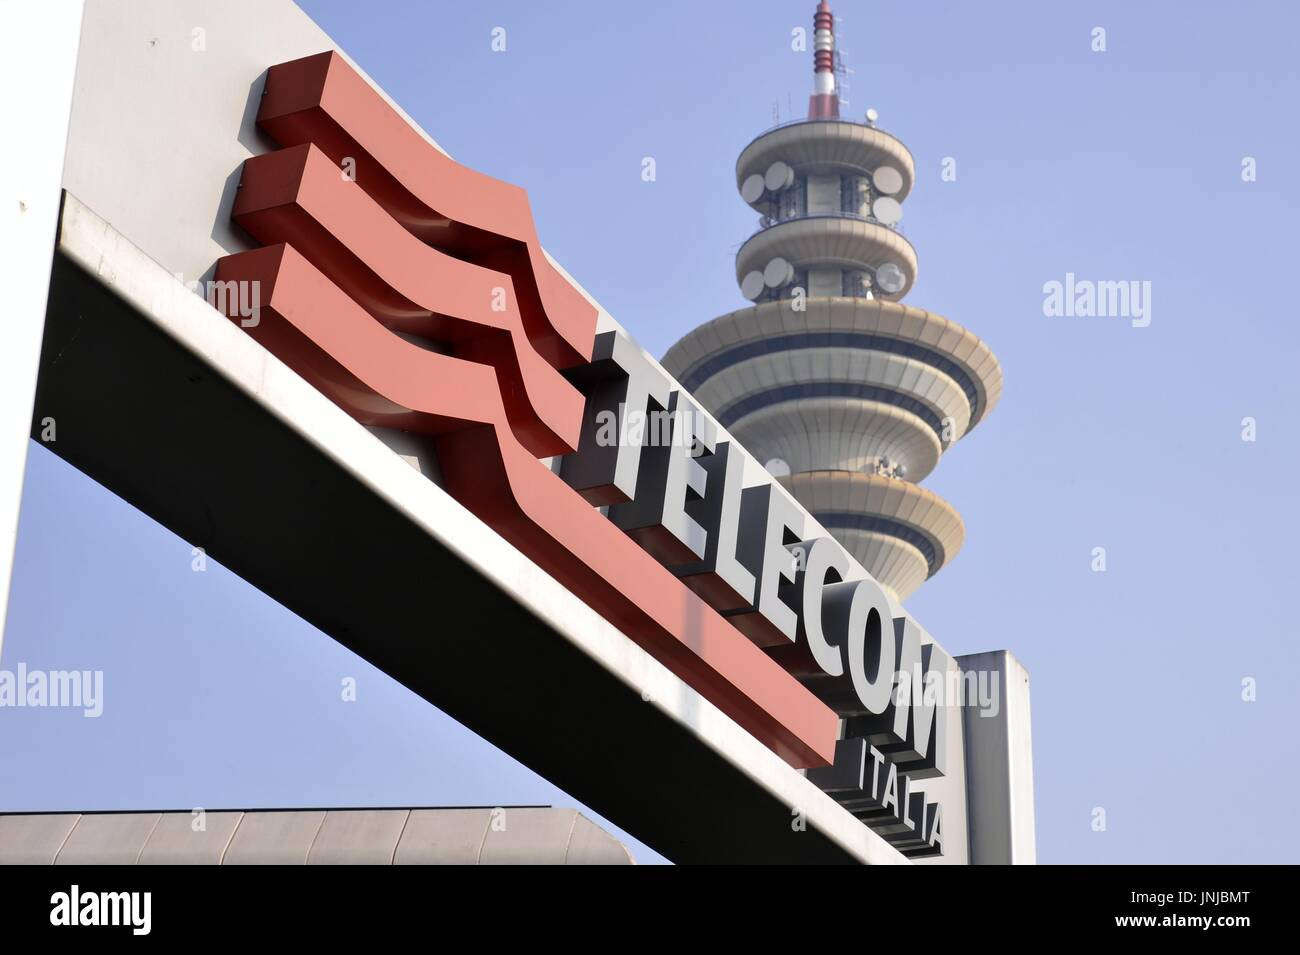 Telecom Italia Tower Immagini & Telecom Italia Tower Fotos Stock - Alamy